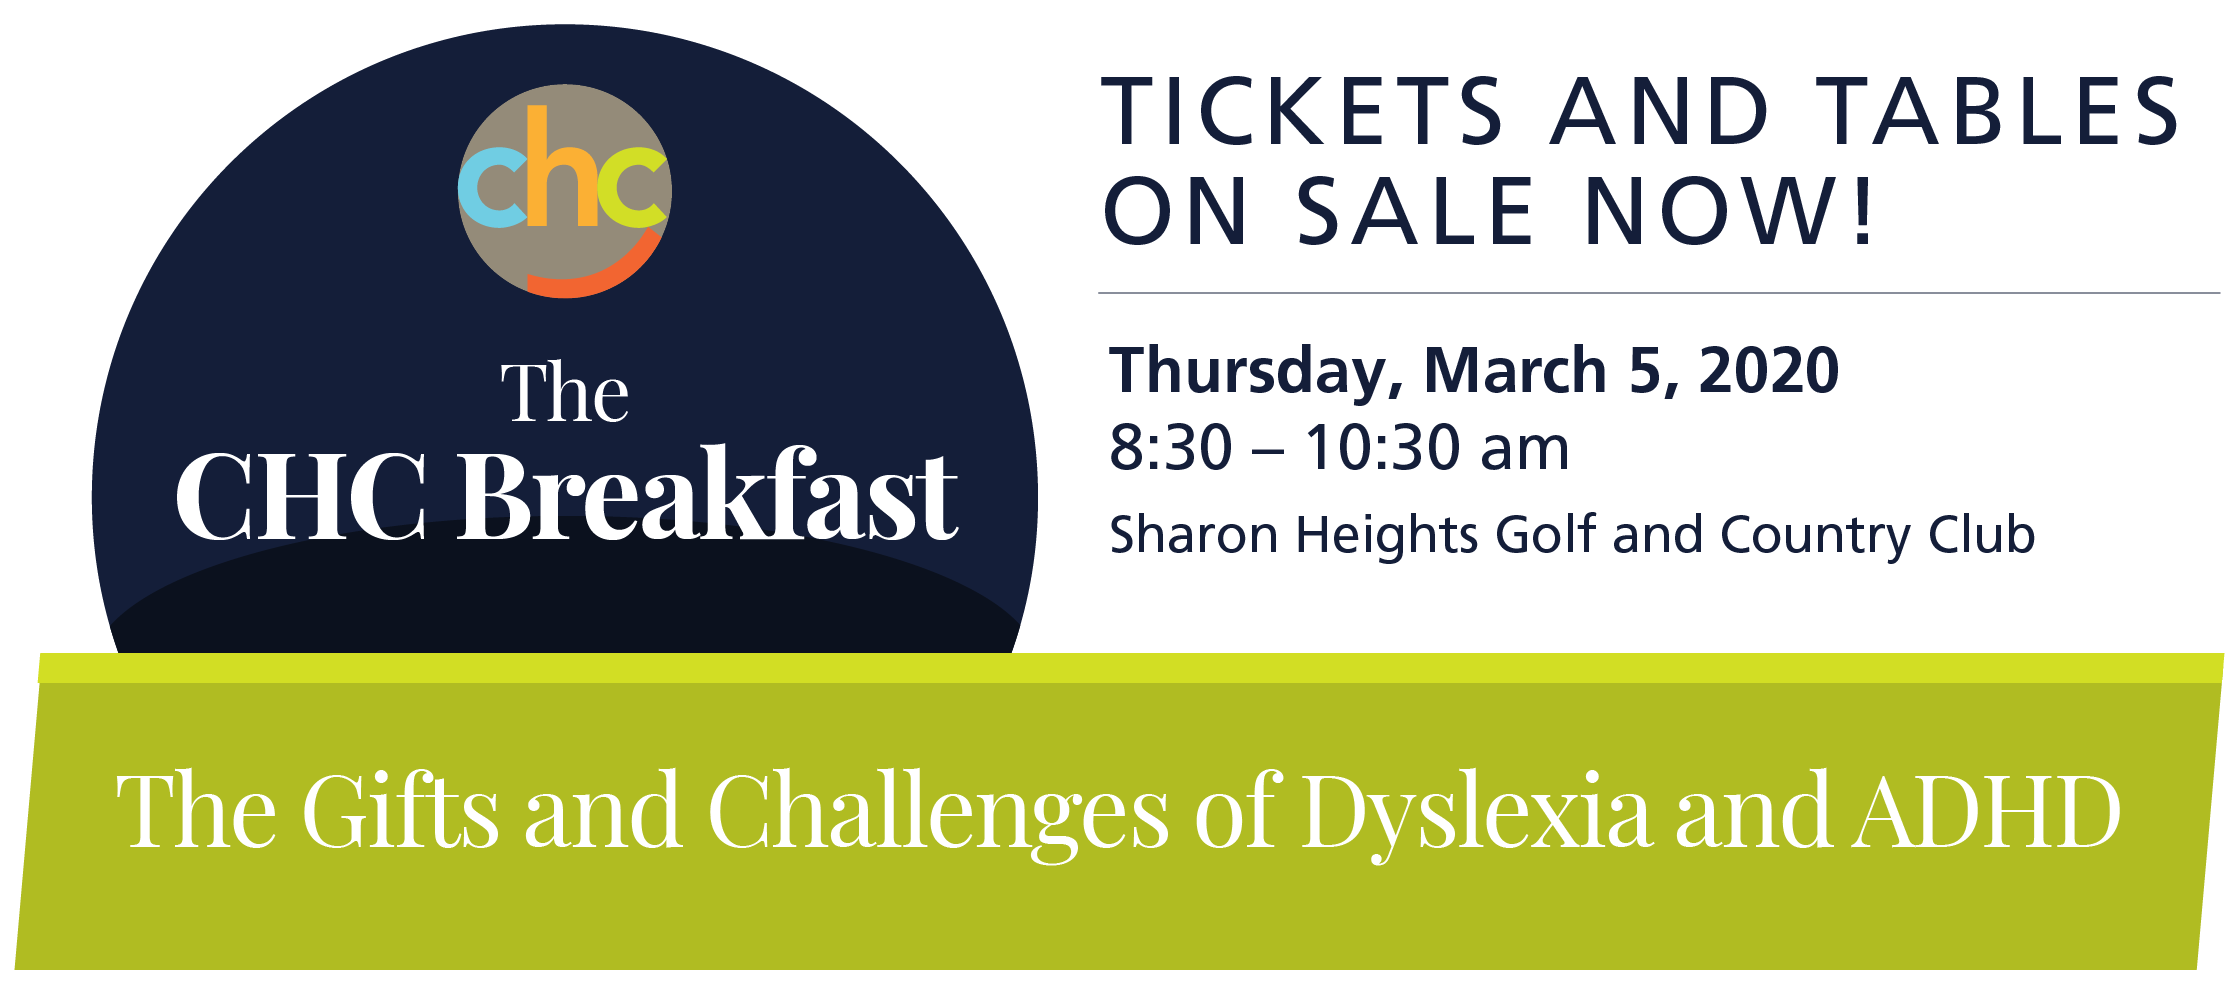 Buy Tickets: The CHC Breakfast, Thursday, March 5, 2020